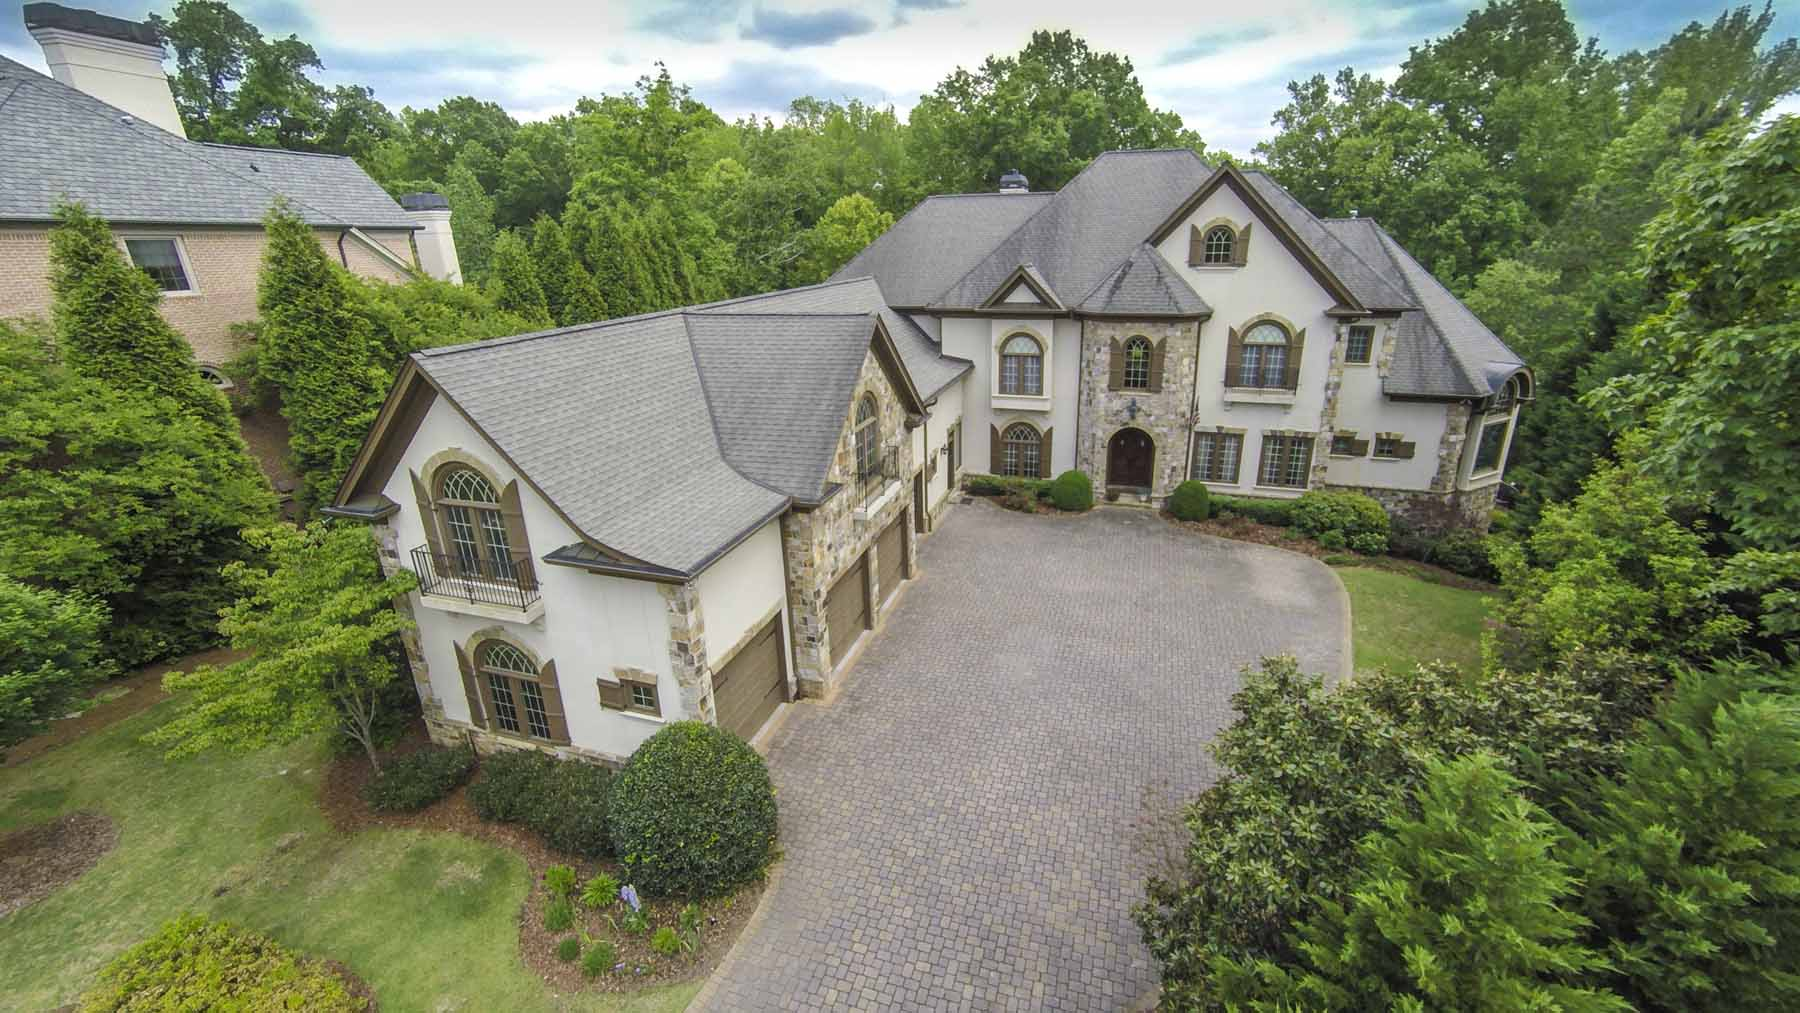 Vivienda unifamiliar por un Venta en Stunning Home Meets Modern Updates on the Sparkling Chattahoochee River 500 Covington Cove Alpharetta, Georgia, 30022 Estados Unidos